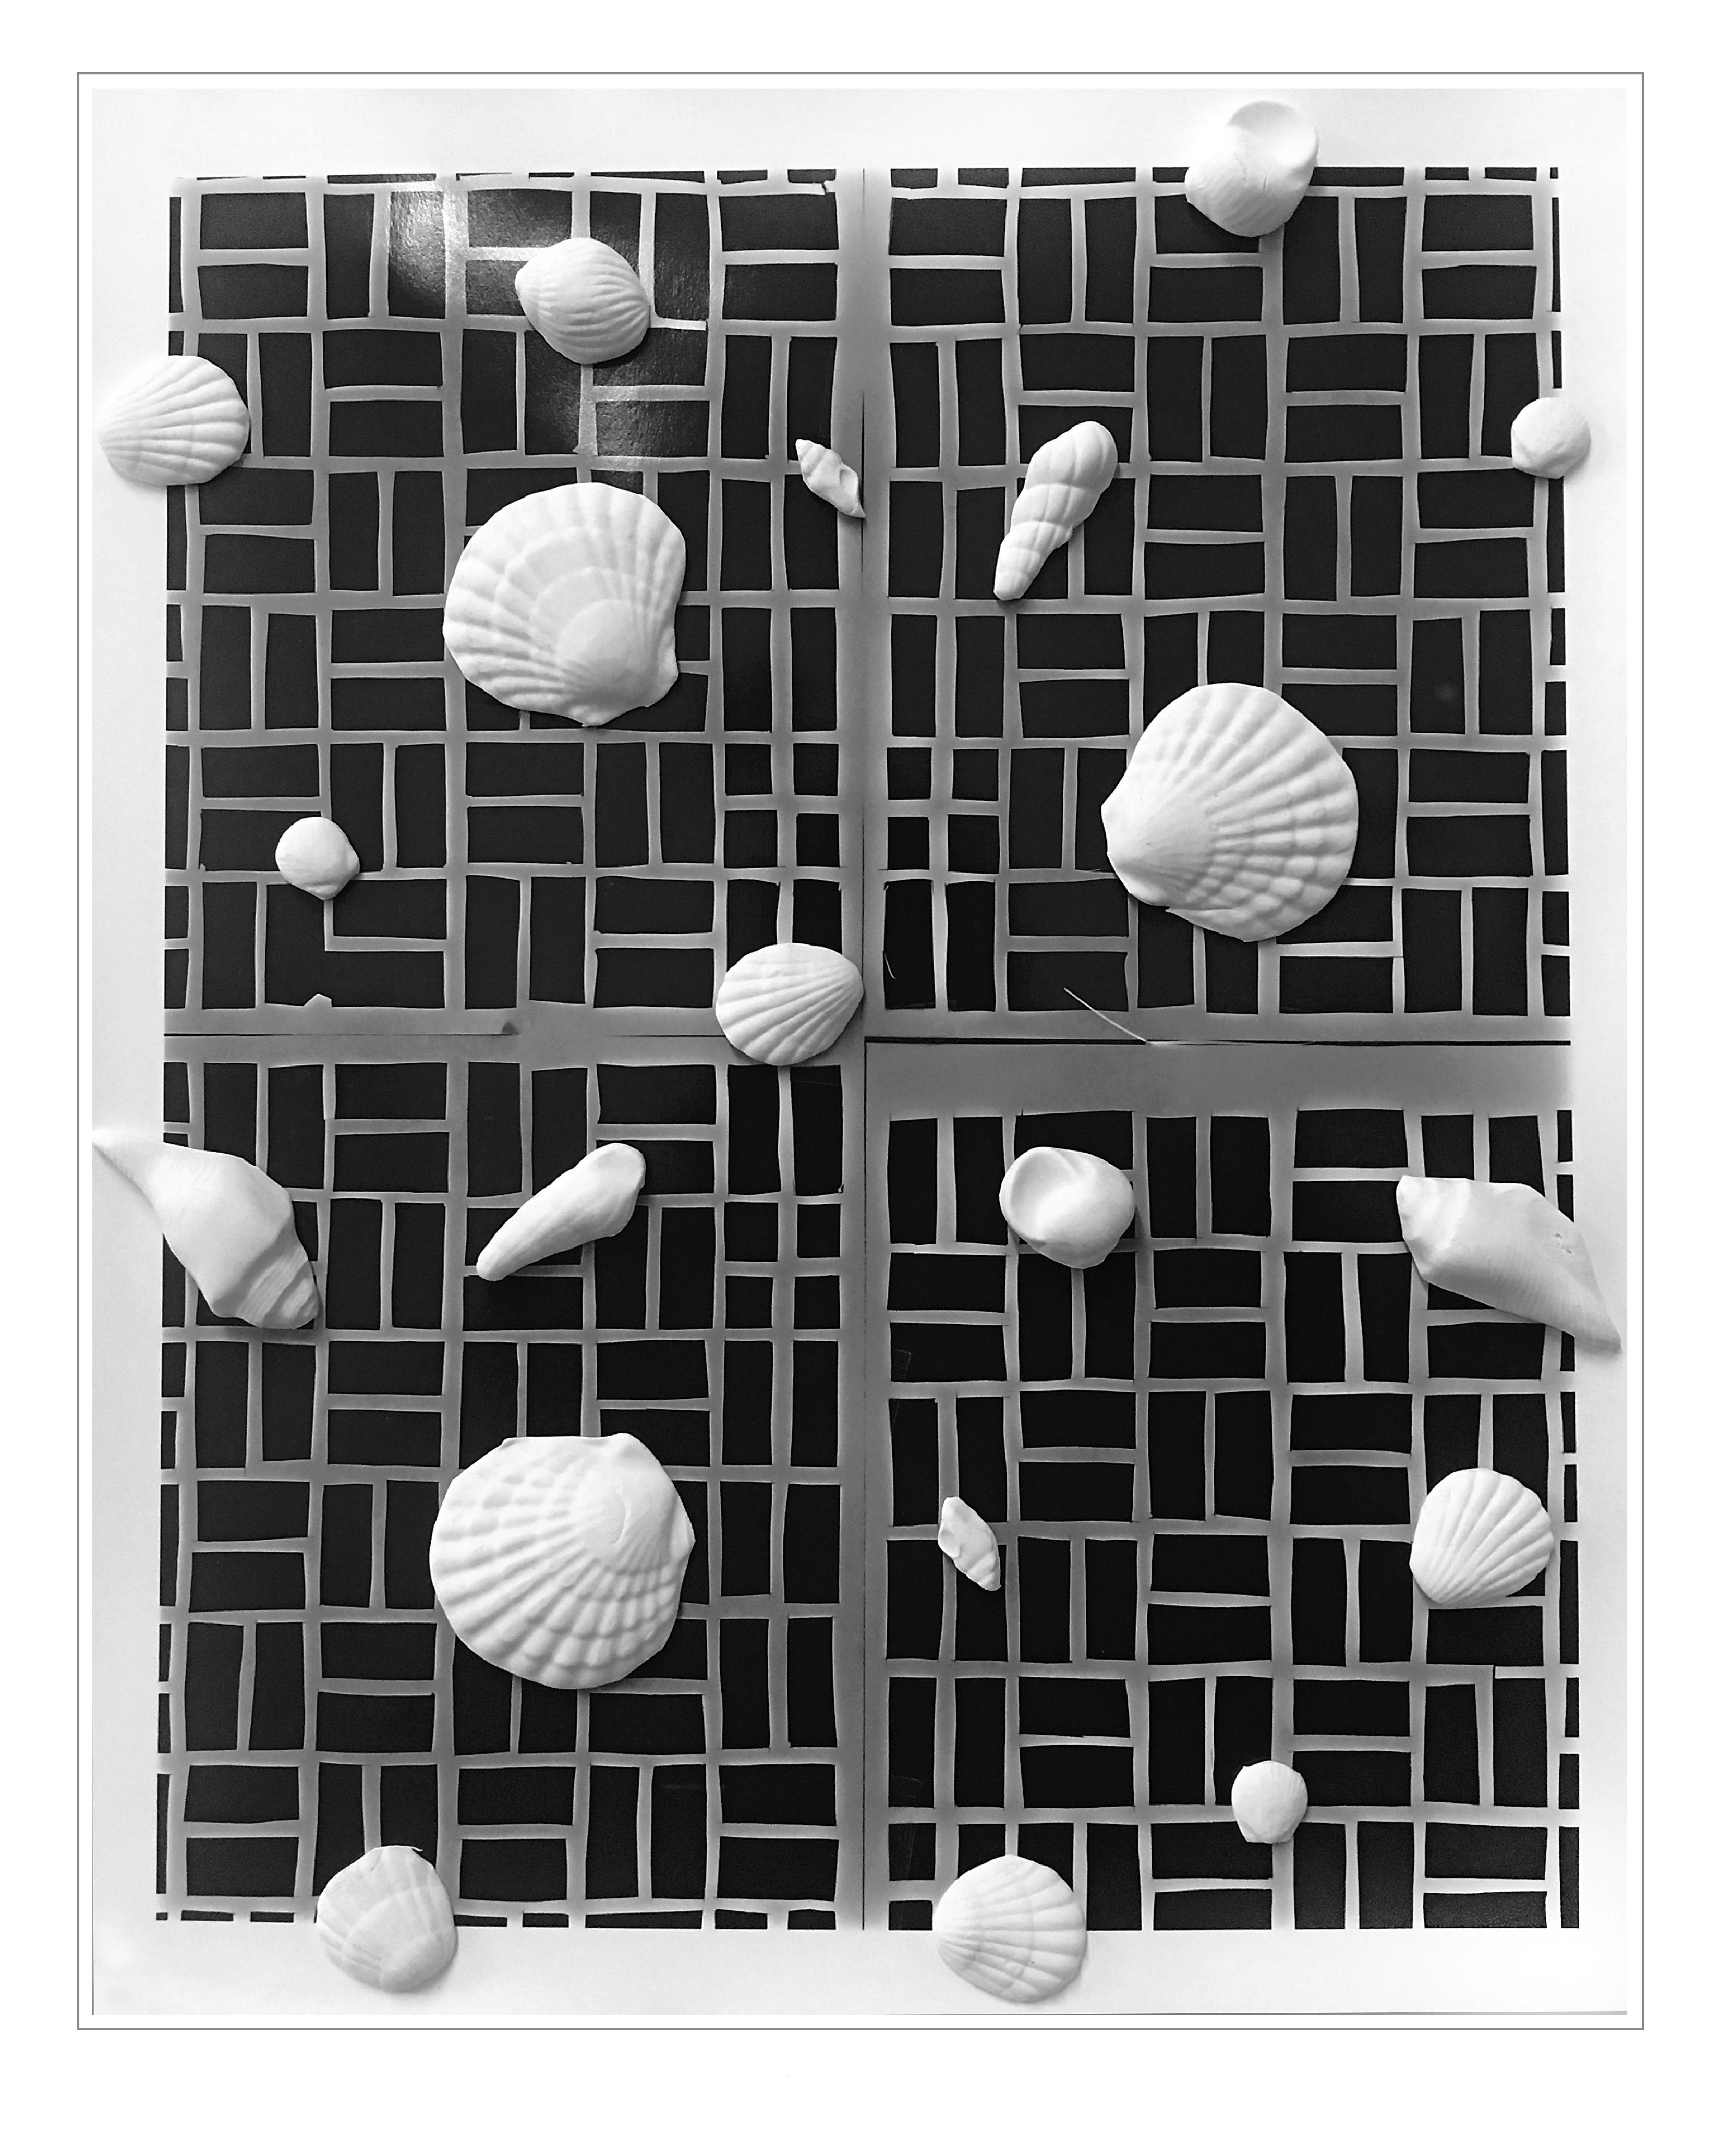 A scattering of white seashell sculptures evenly distributed on a black gridlike pattern.